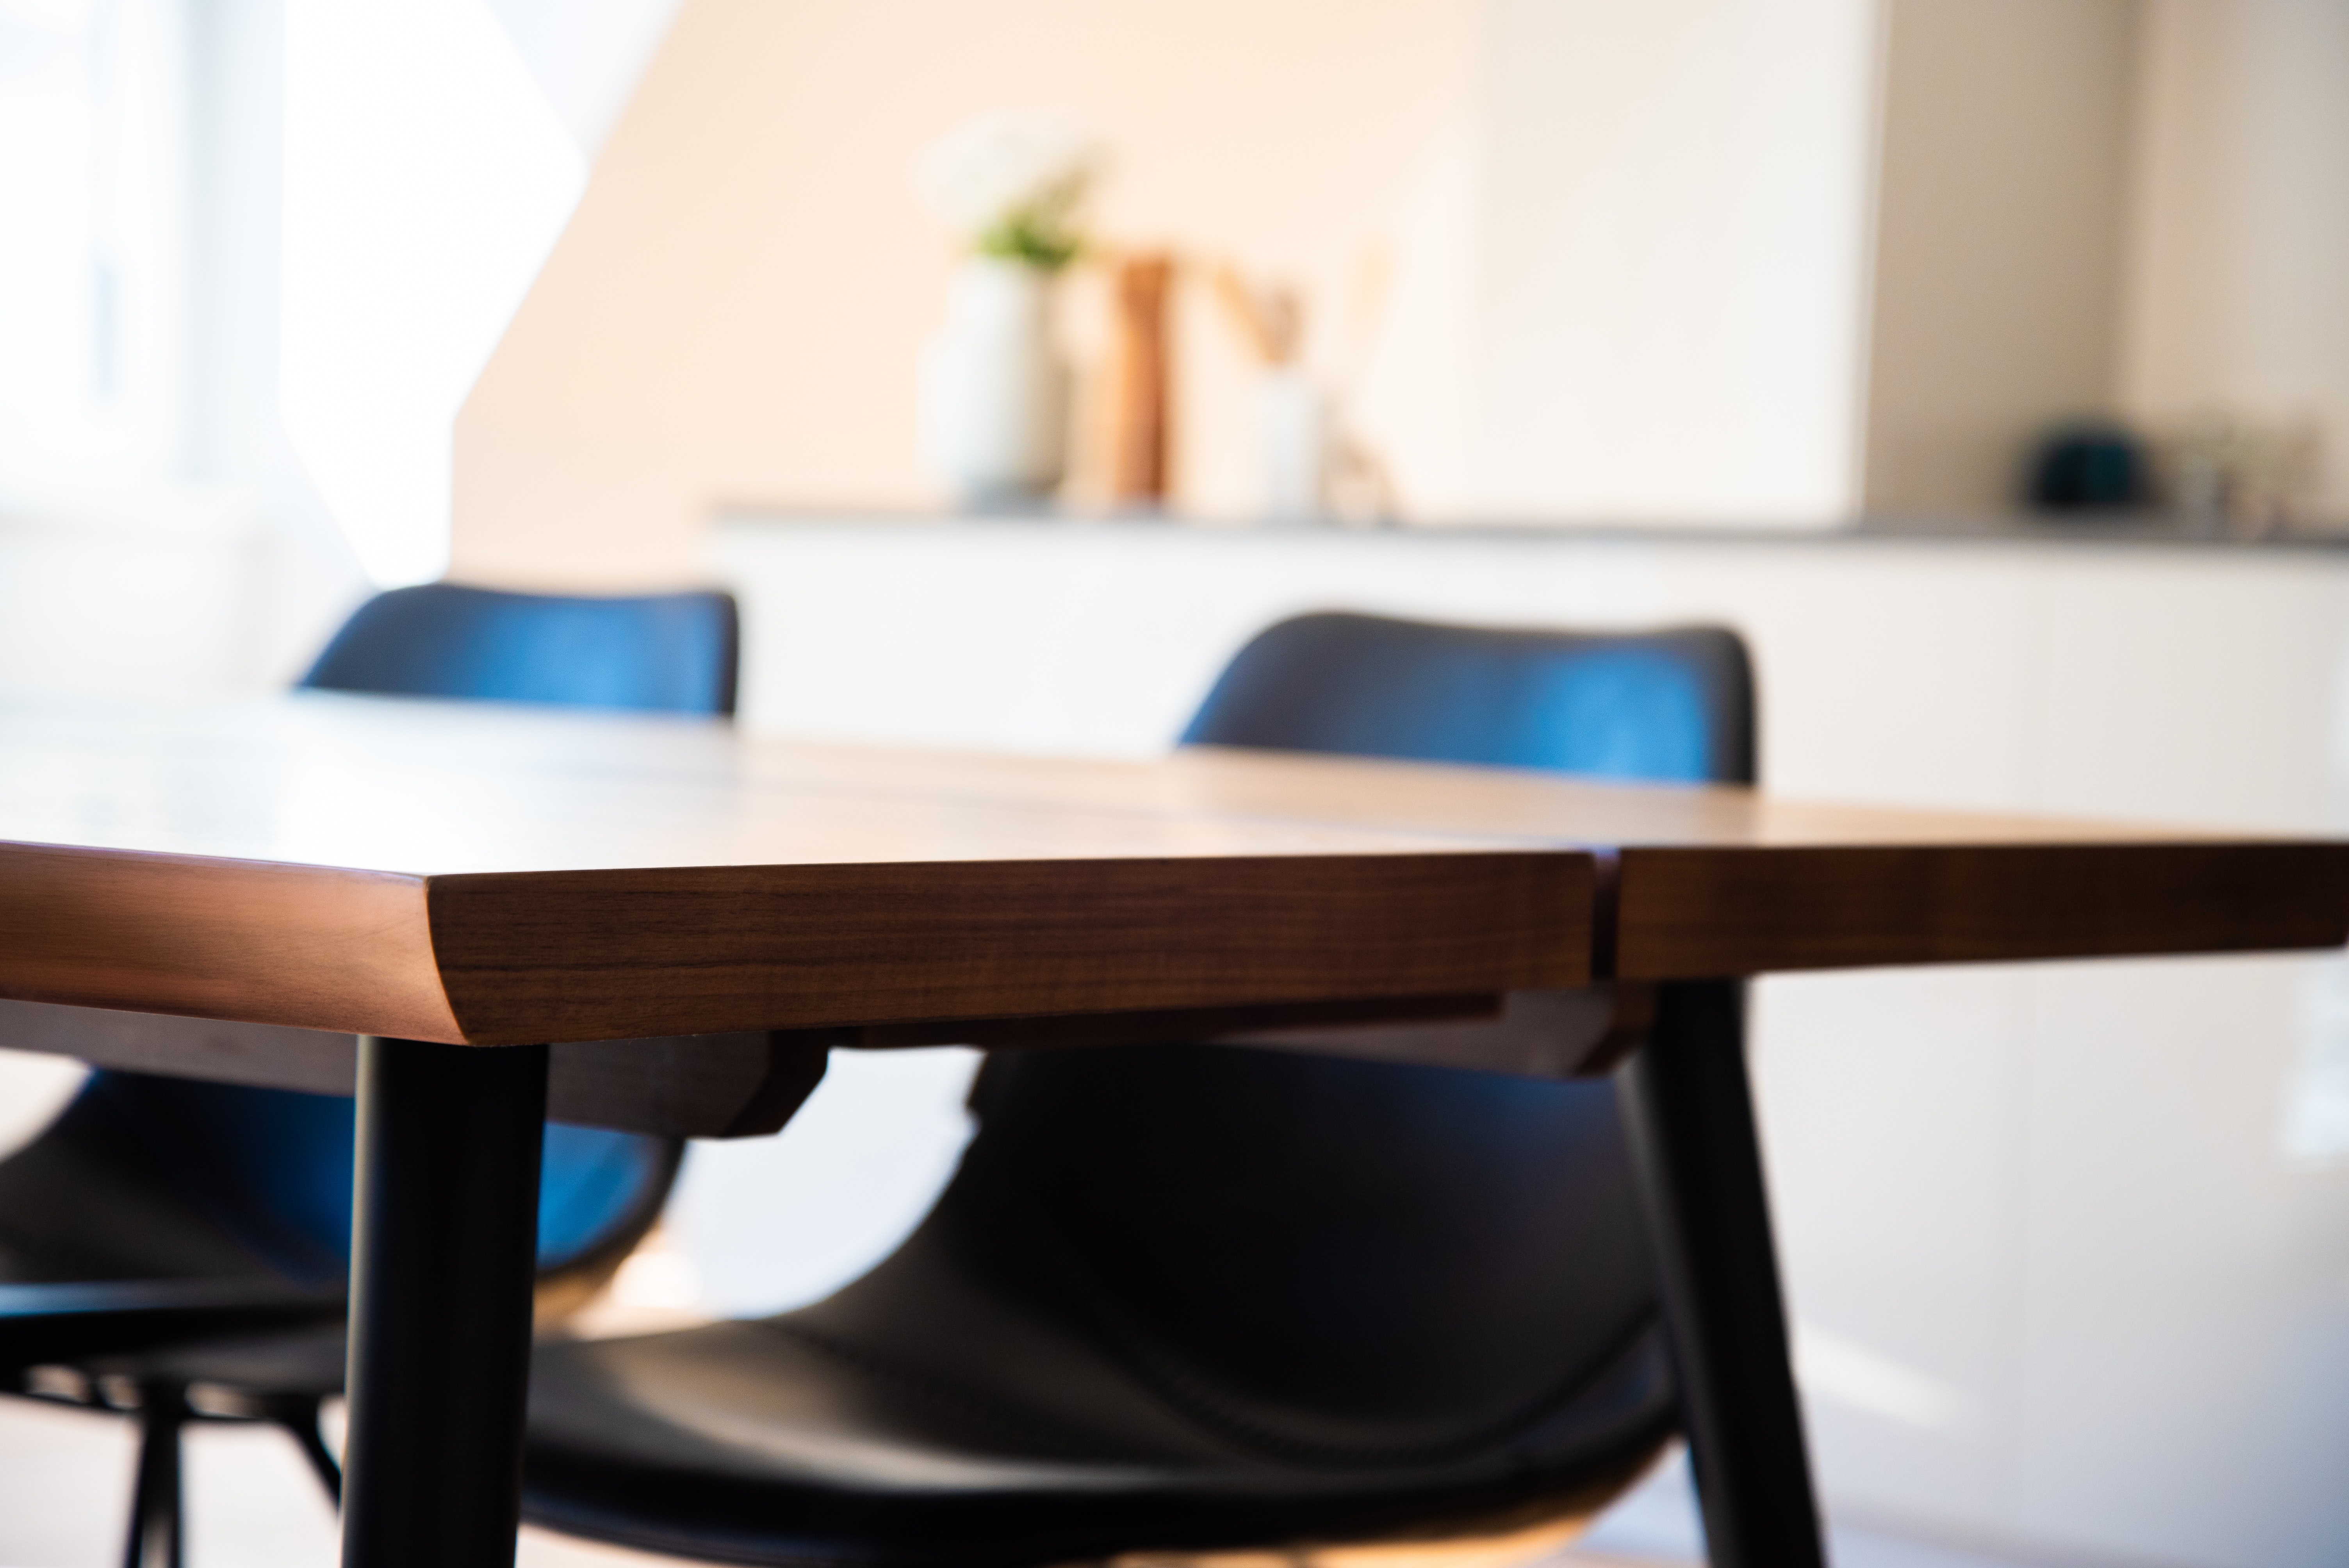 selective focus photography of table and chairs